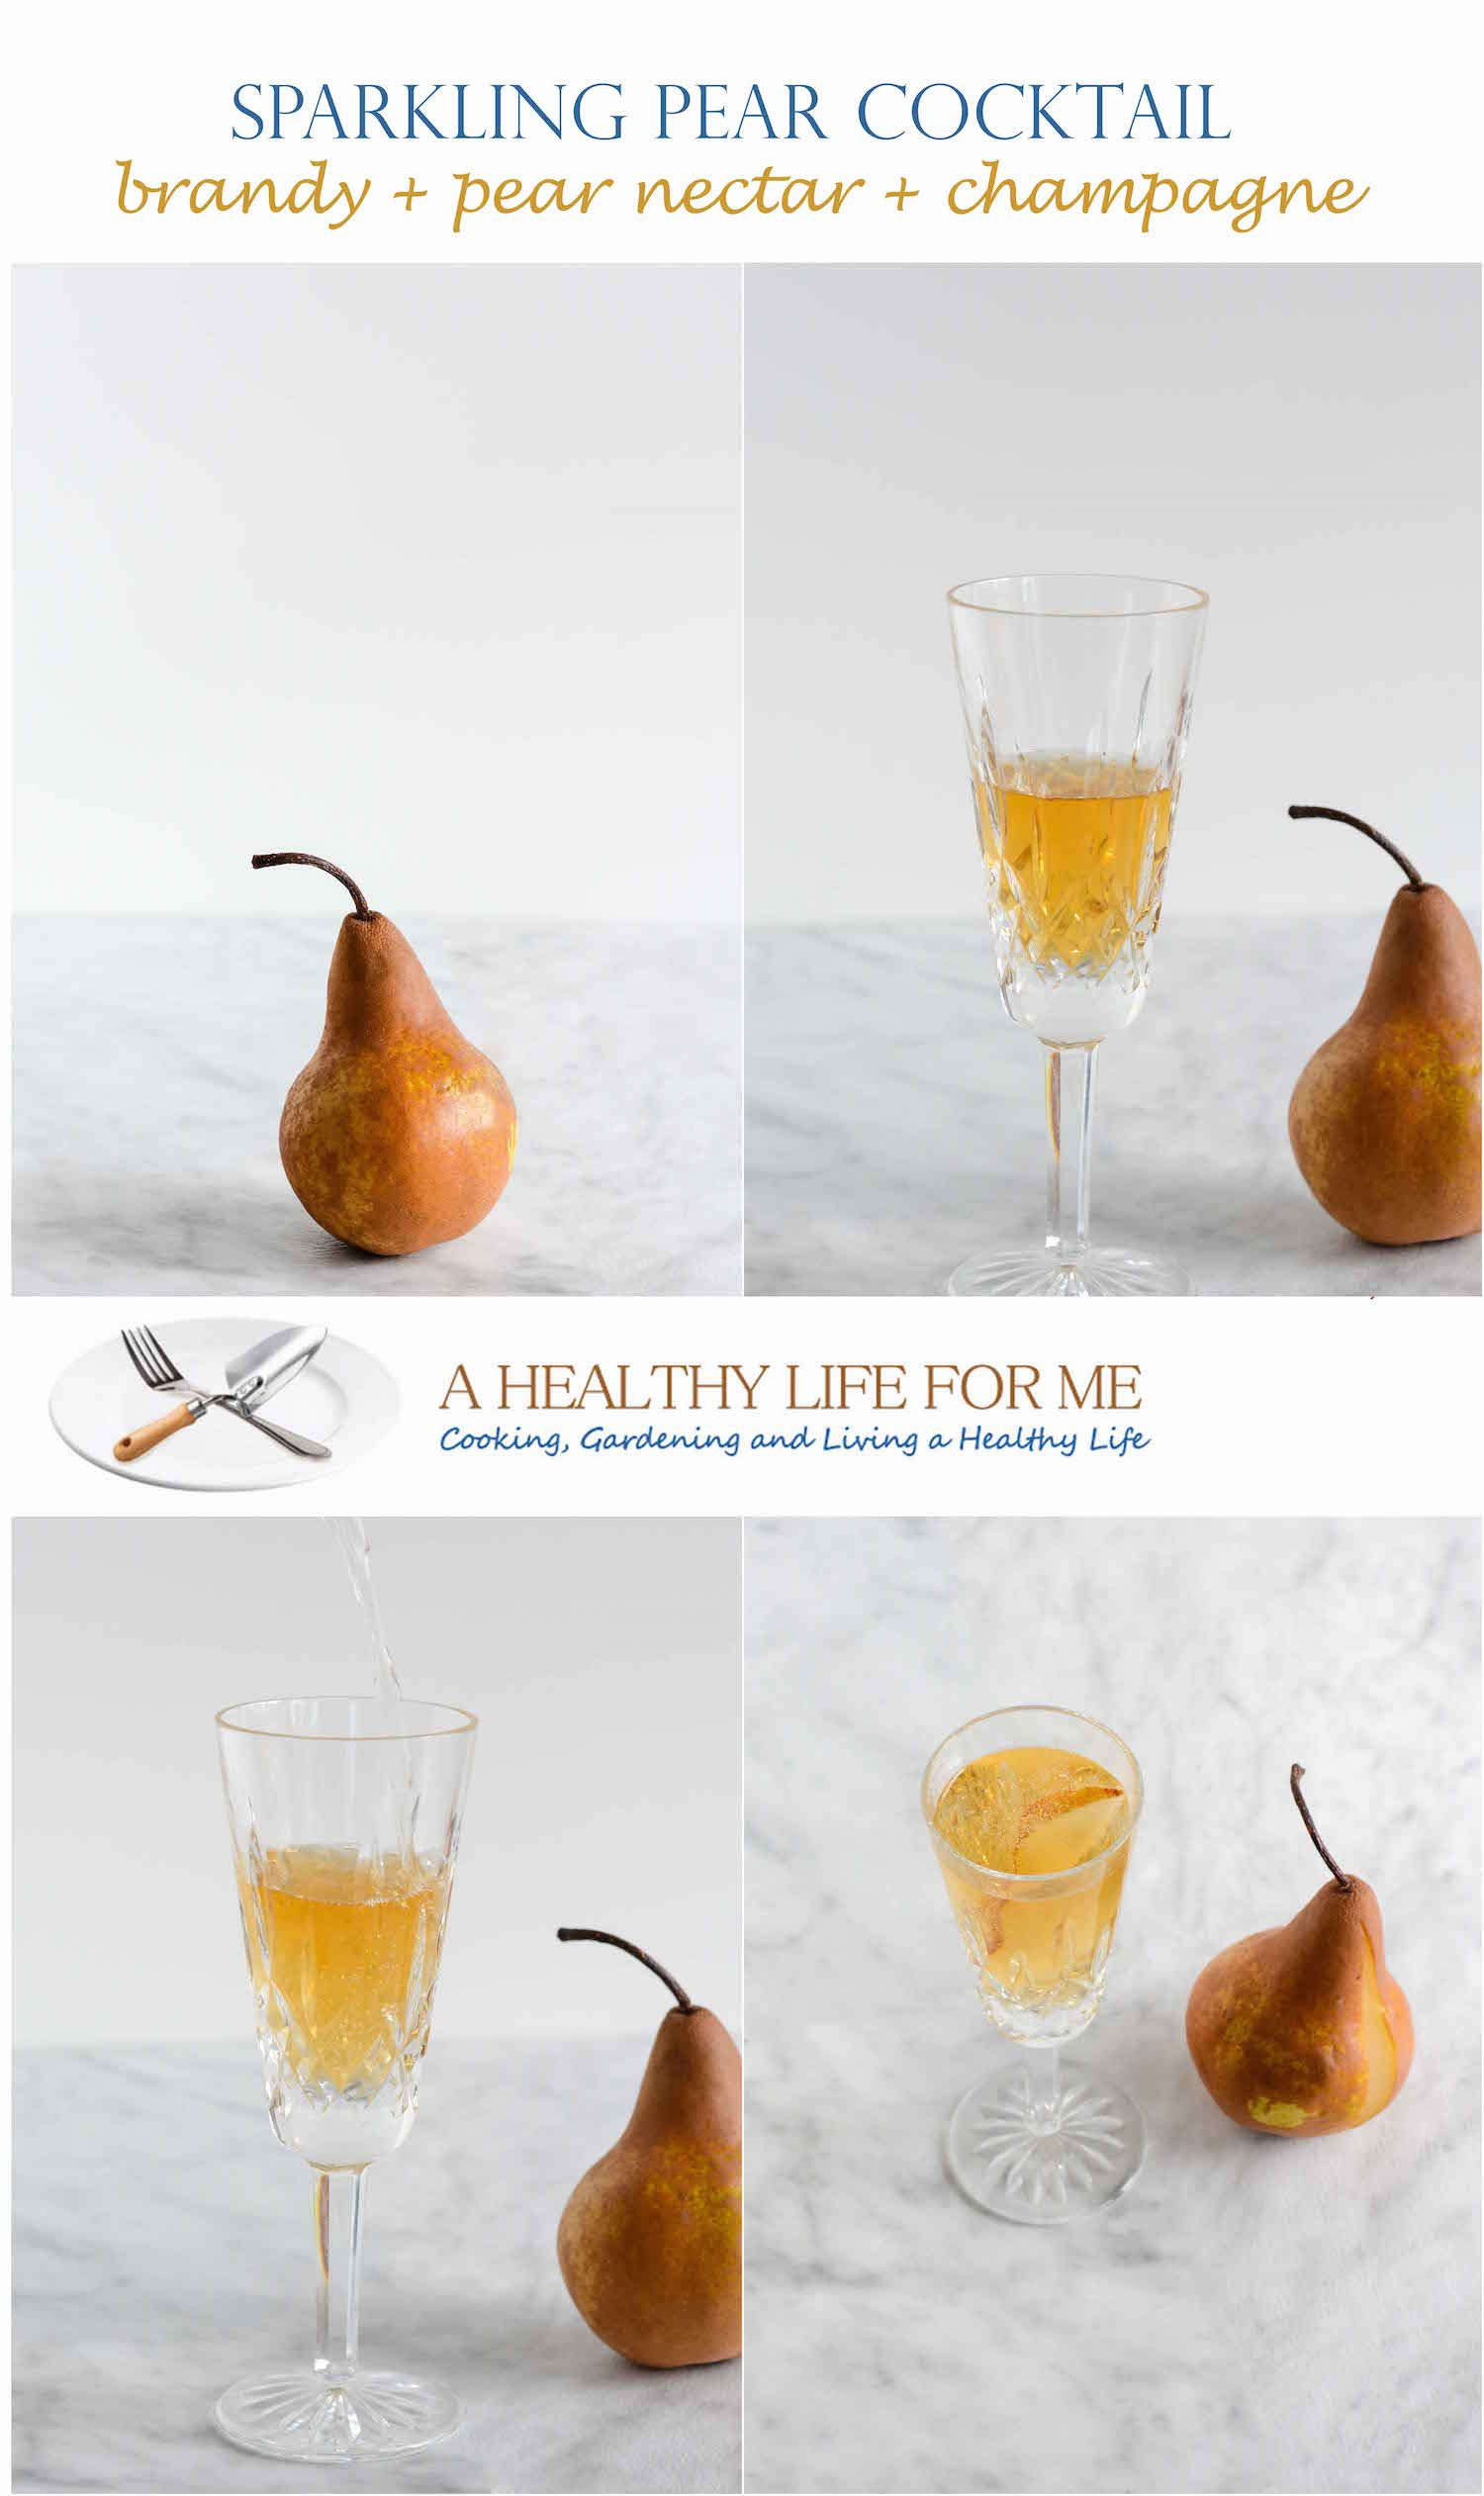 Sparkling Pear Cocktail is a bit of sweet and bubbly that is all about happy celebration. - A Healthy Life For Me